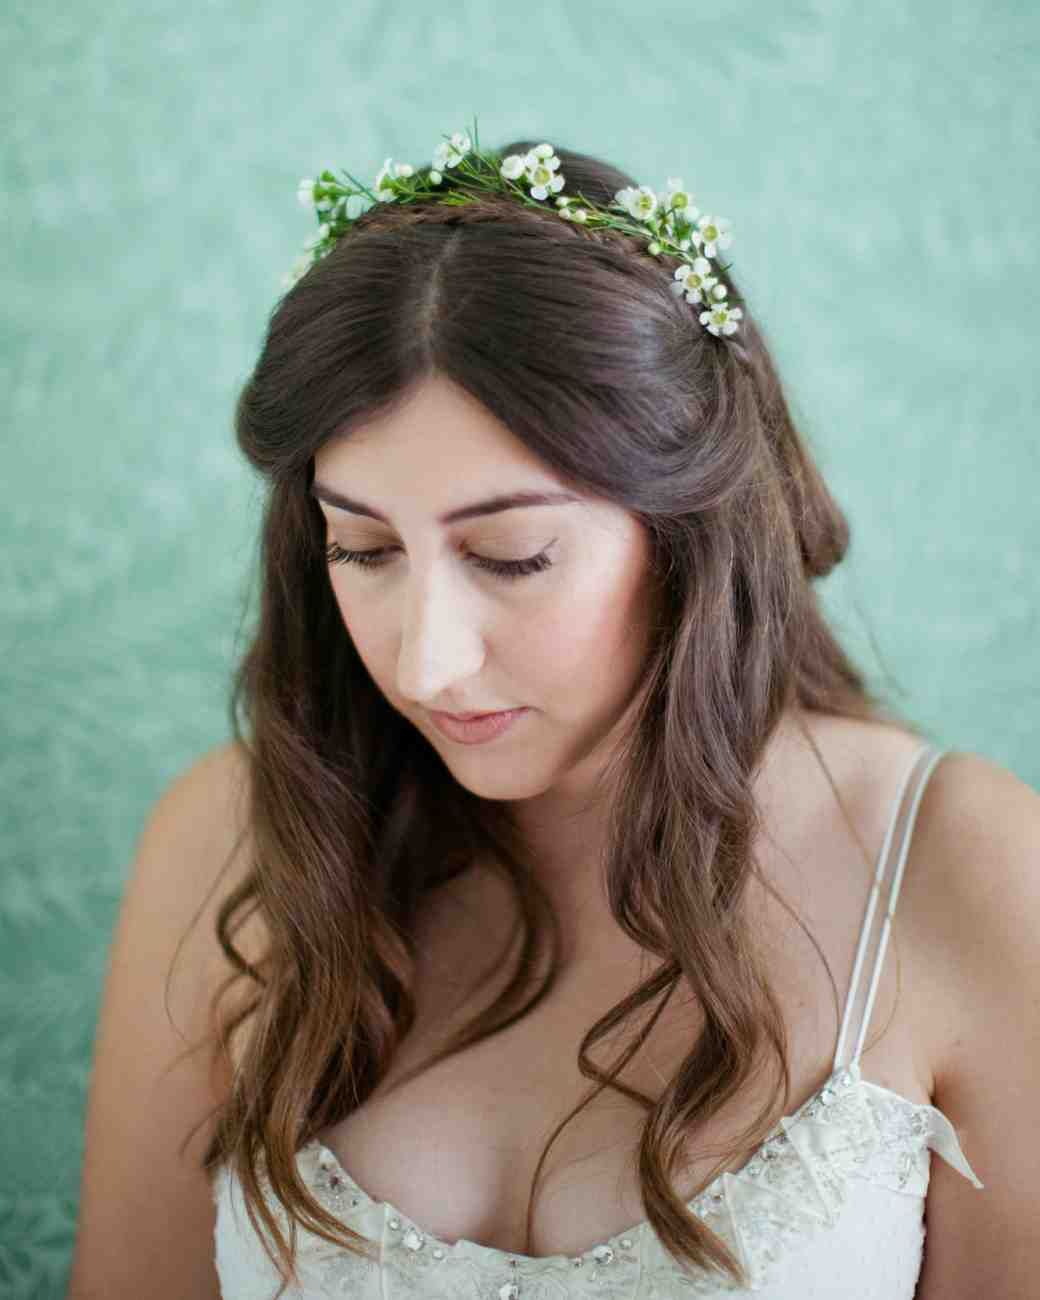 Add a simple flower crown to make your wedding day hairstyle add a simple flower crown to make your wedding day hairstyle standout even more izmirmasajfo Gallery